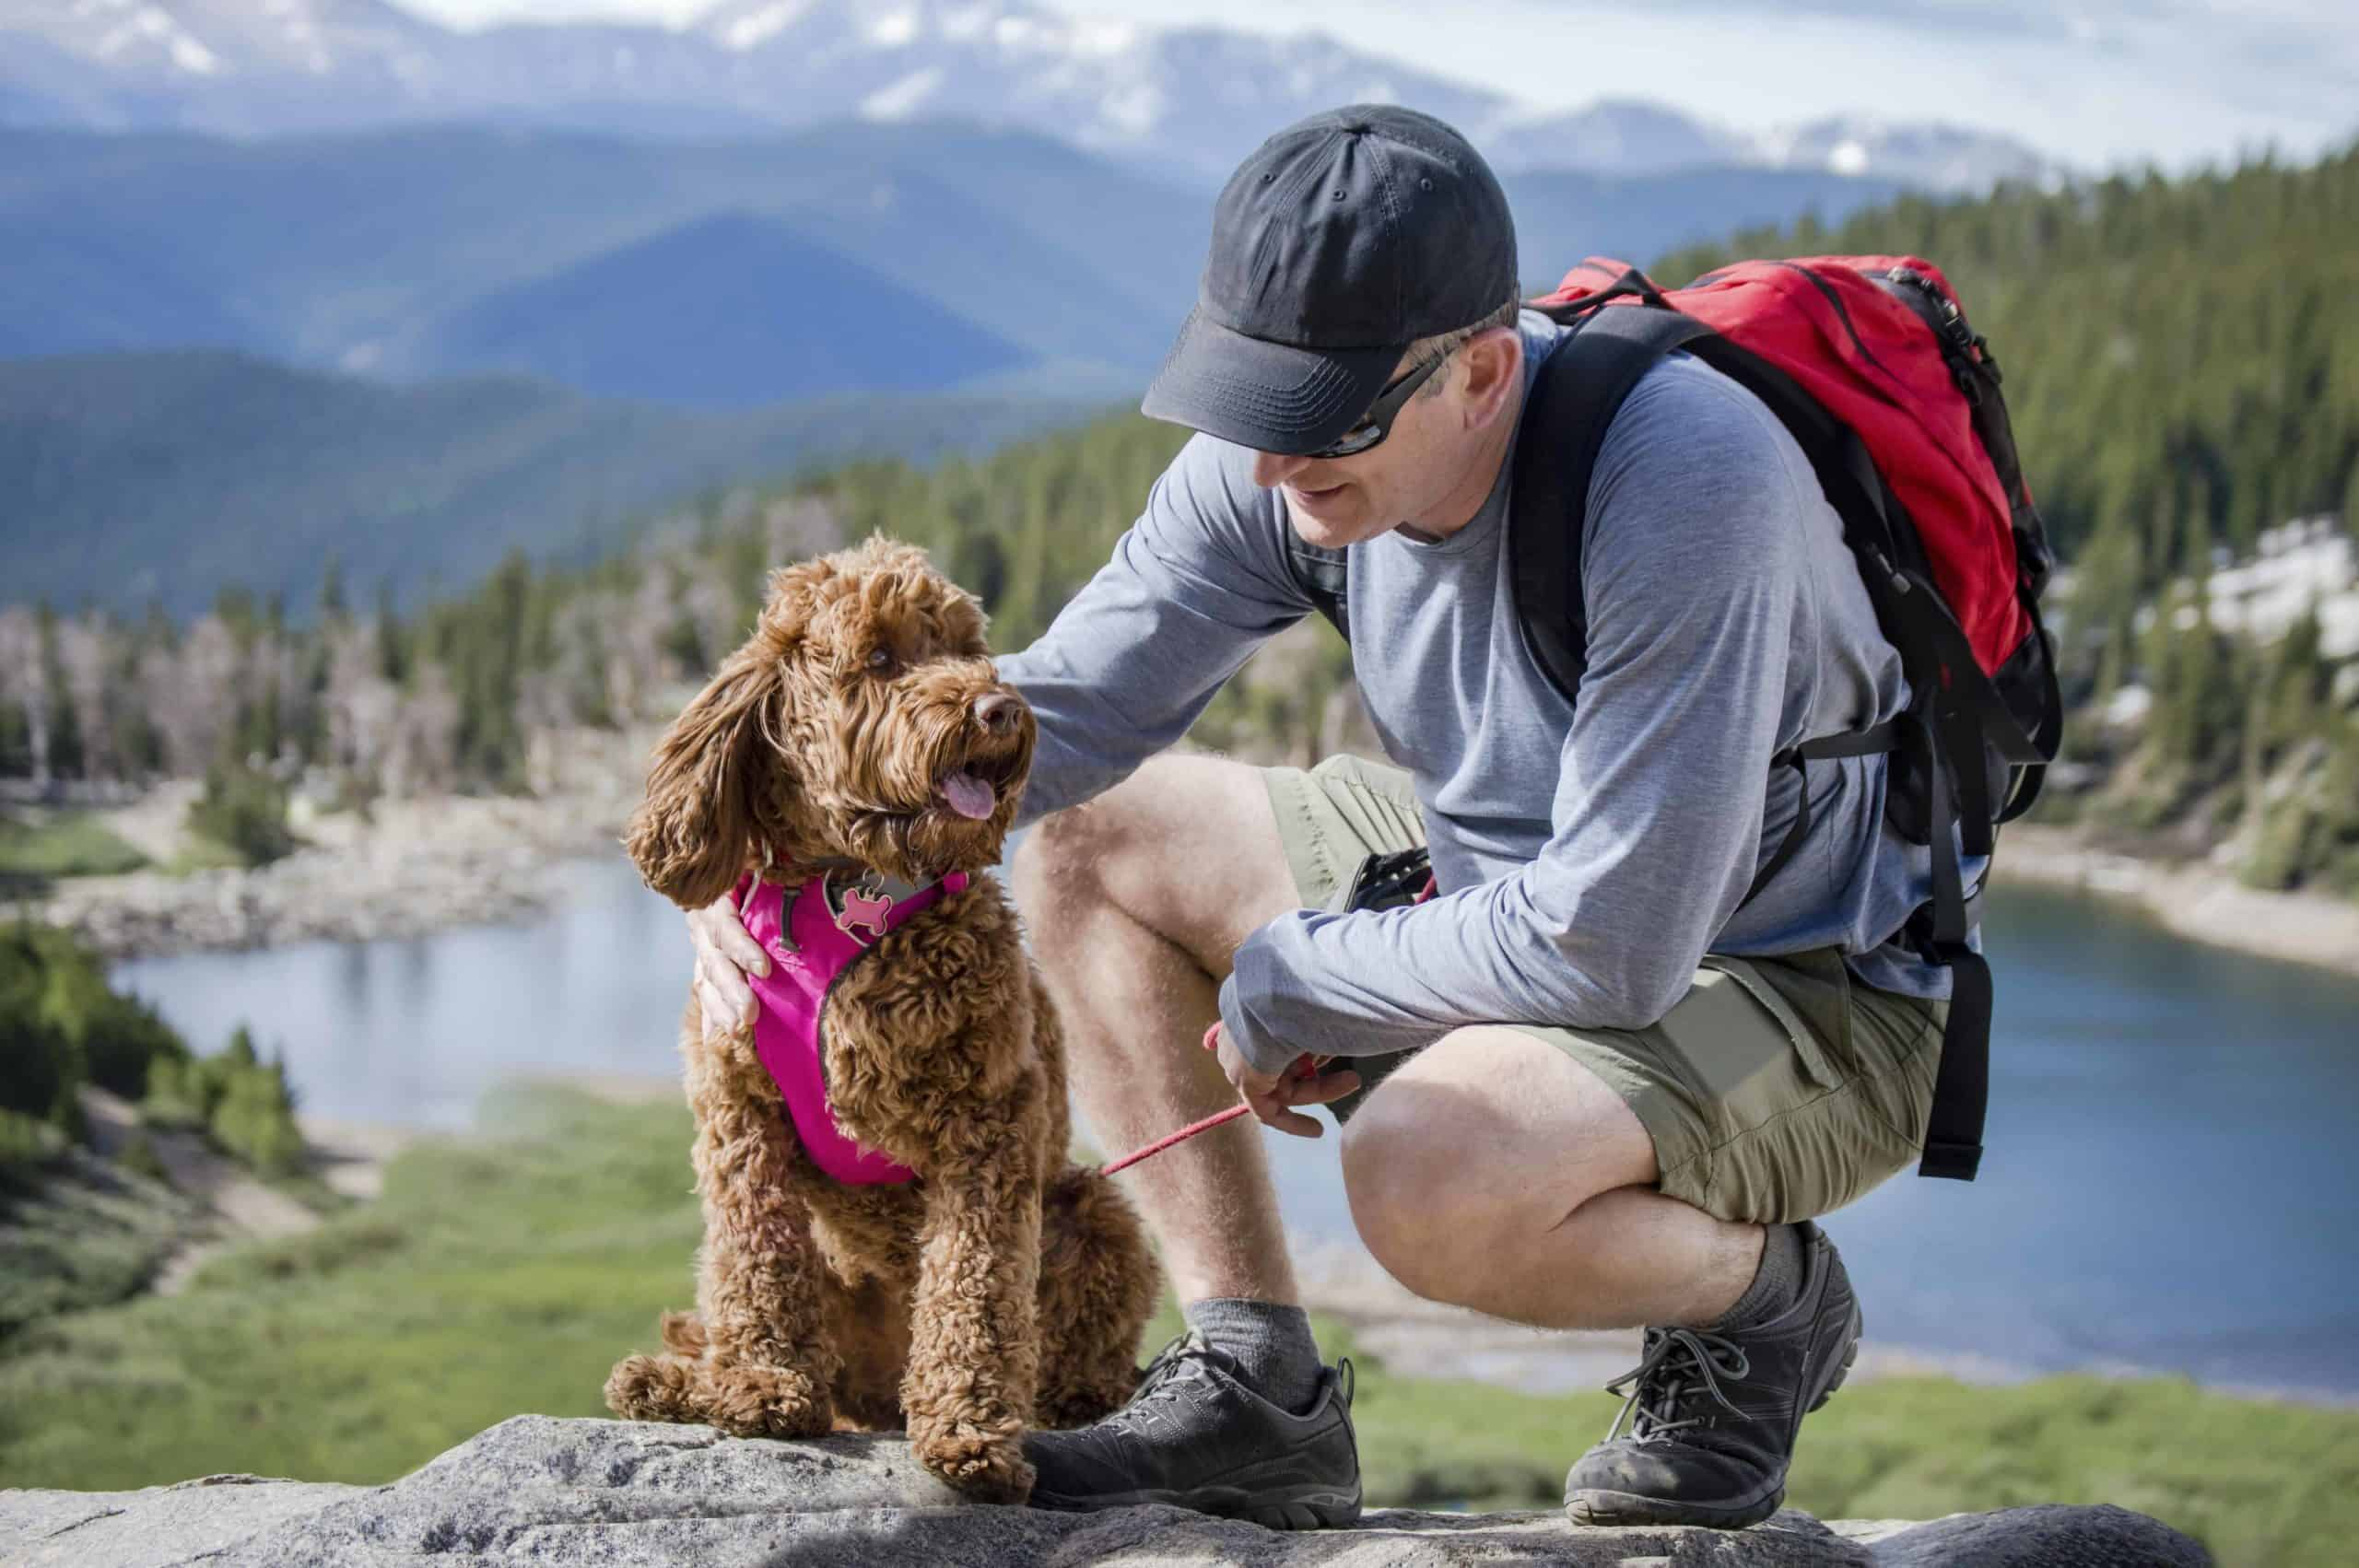 Man hikes with a golden doodle. Dog travel distance depends on the age and breed of the dog. A small, active dog can travel between 5 and 6 hours a day or 12.5 and 15 miles.